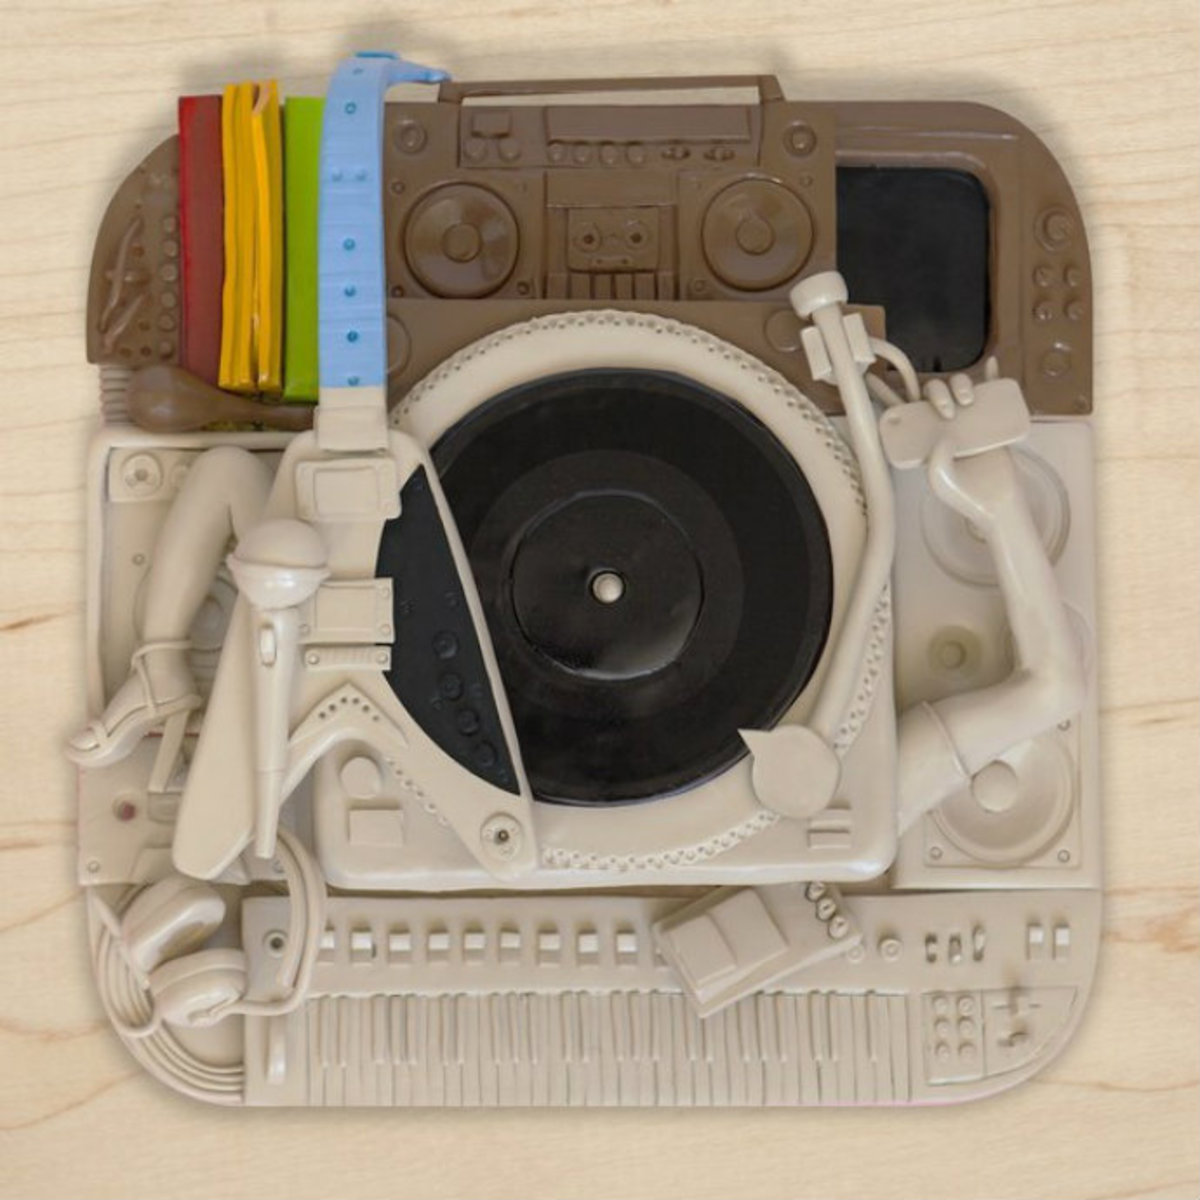 Instagram Music Aspires To Break Artists, But Can They Pull It Off?